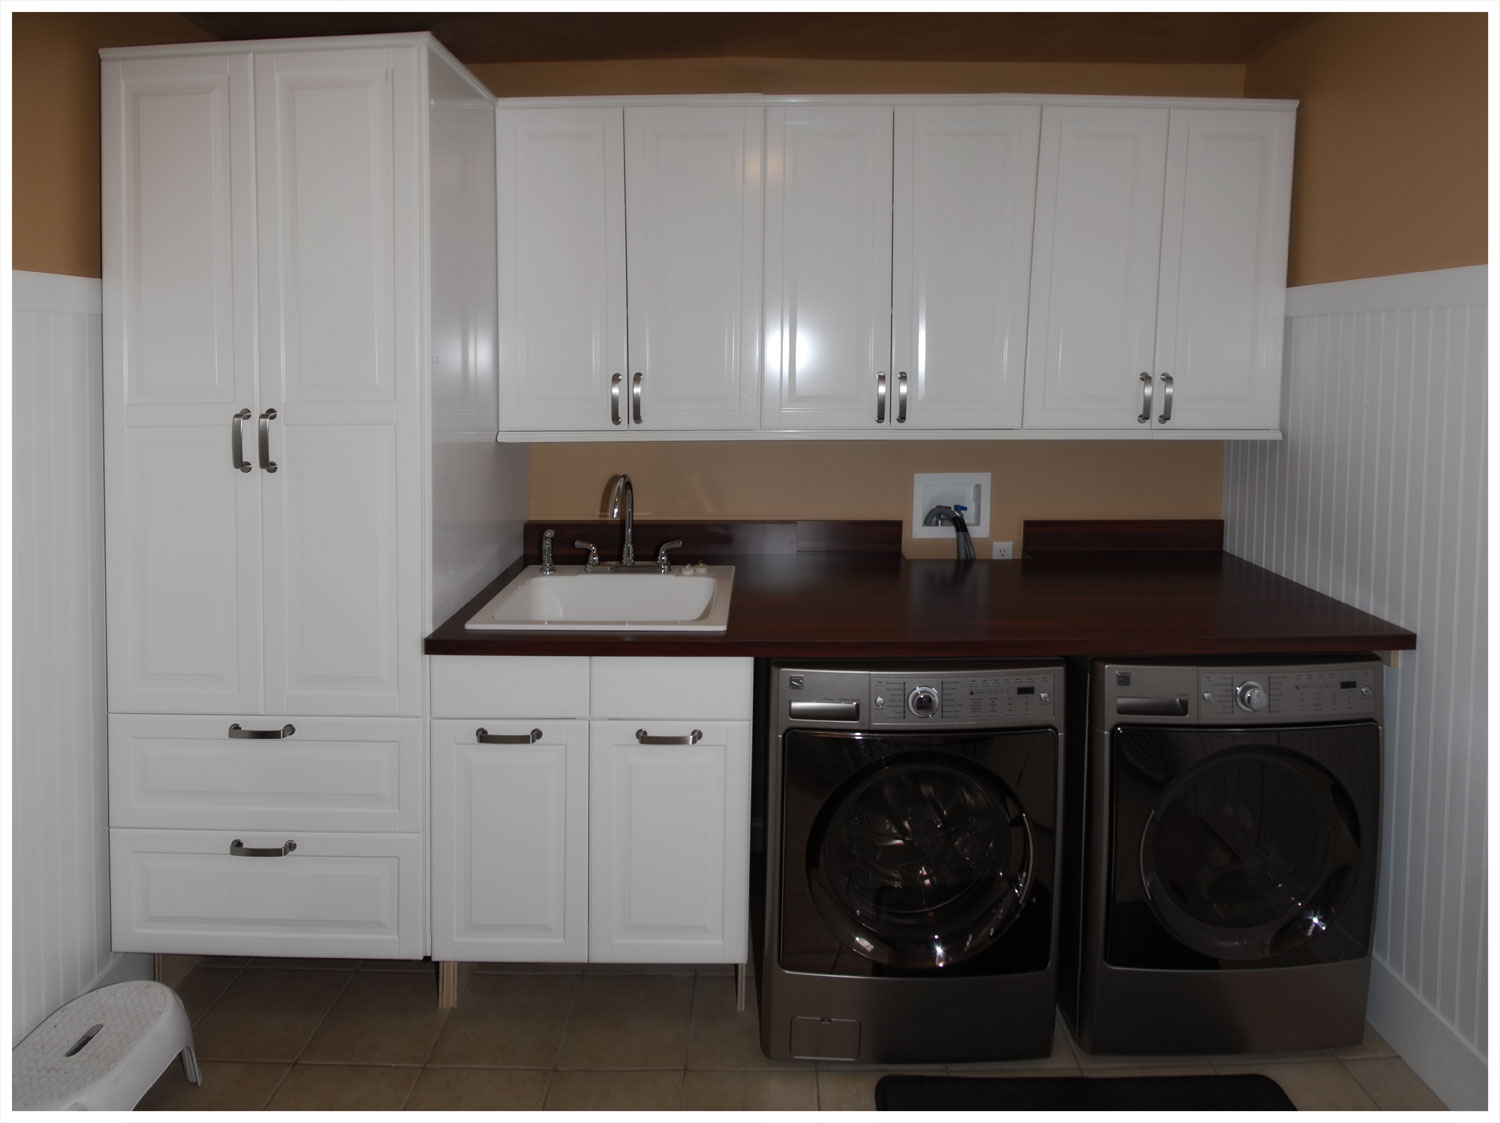 taylor family new laundry room